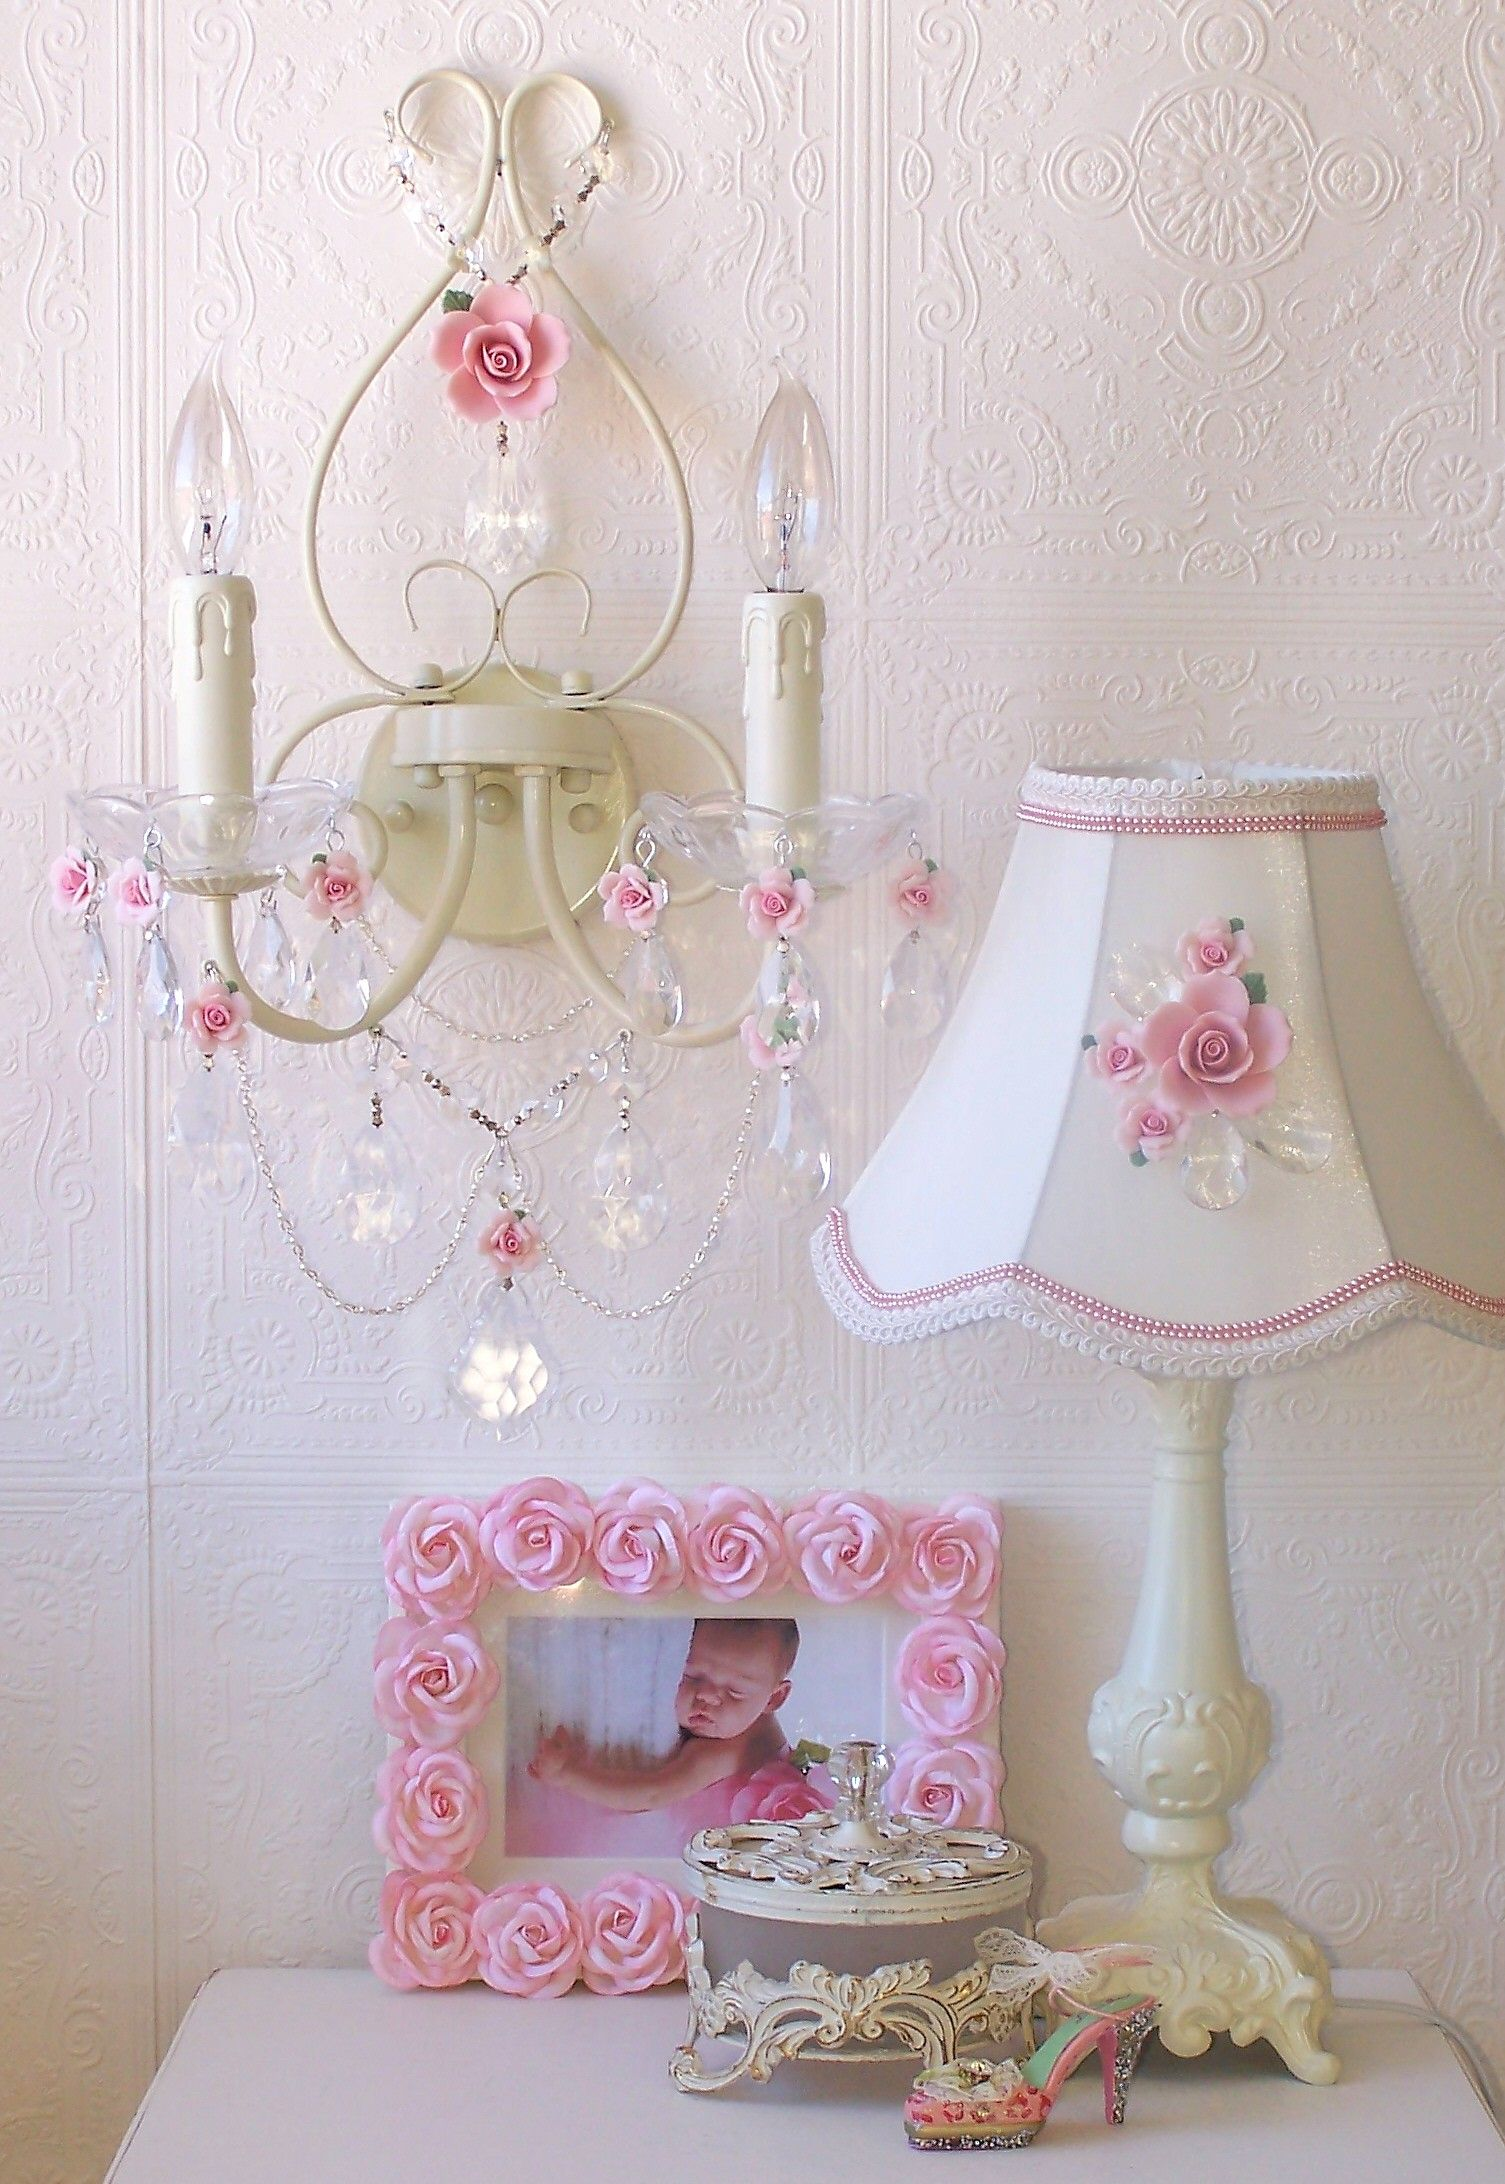 Create soft mood lighting with this Romantic double-light Wall Sconce in antique white. It has been adorned with the most delicate pale pink porcelain roses in full bloom and decorated with sparkly crystal chains, a fancy-cut French pendant, gorgeous glass bobeches and a multitude of crystal teardrops. Delicate beaded pearl chains add a dreamy-refined touch to this dreamy wall sconce, truly a Fairy-tale beauty!  Please check